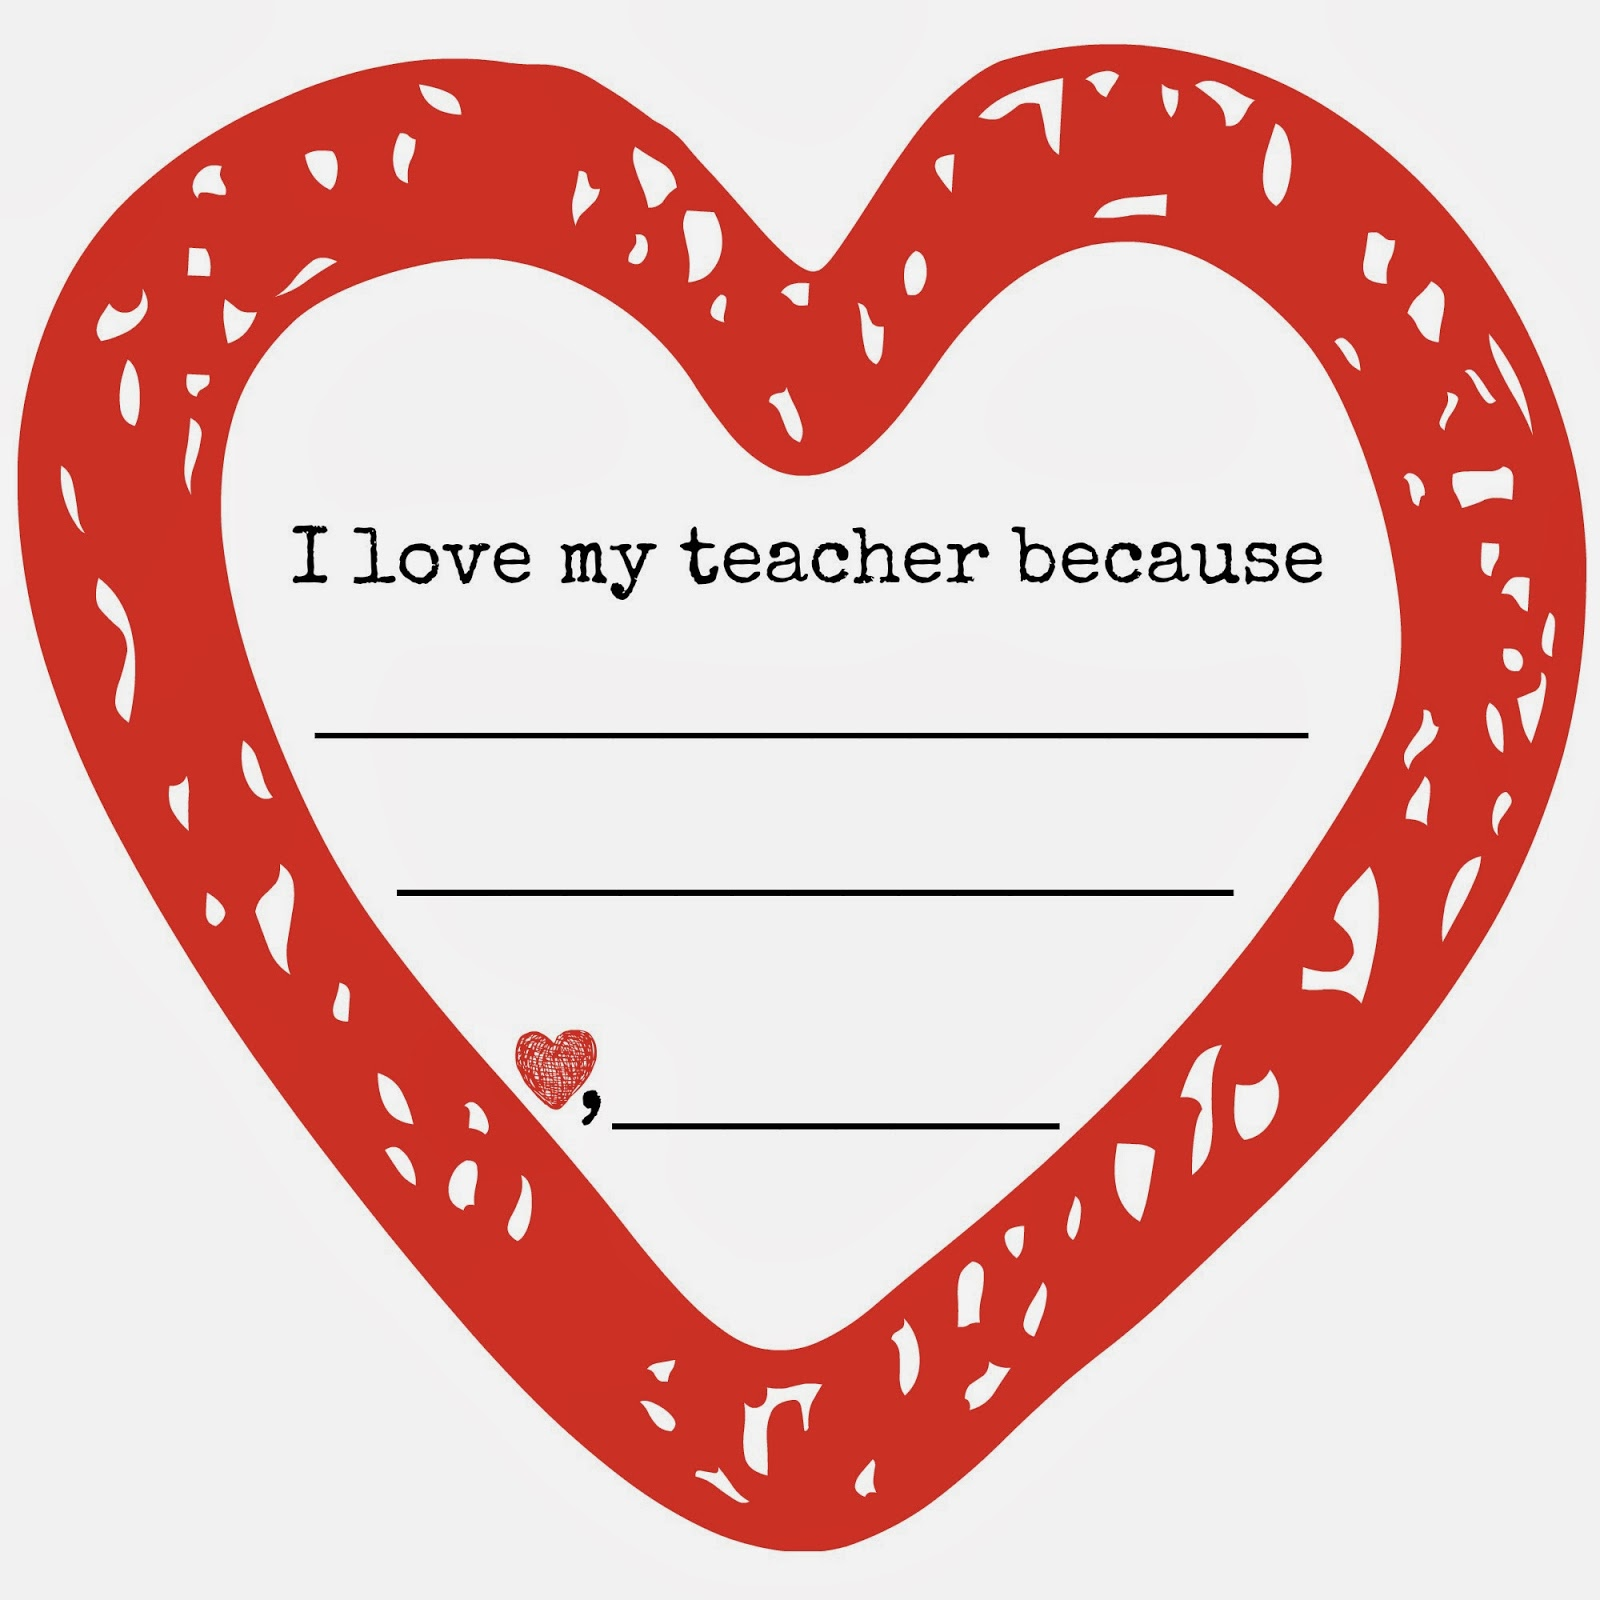 I++my+teacher+beacause+printable Valentine S Day Party Parent Letter Template on birthday letter template, valentine's letters written to husbands, valentine's party home about letters, valentine's day school party letters, valentine's day poems and letters,